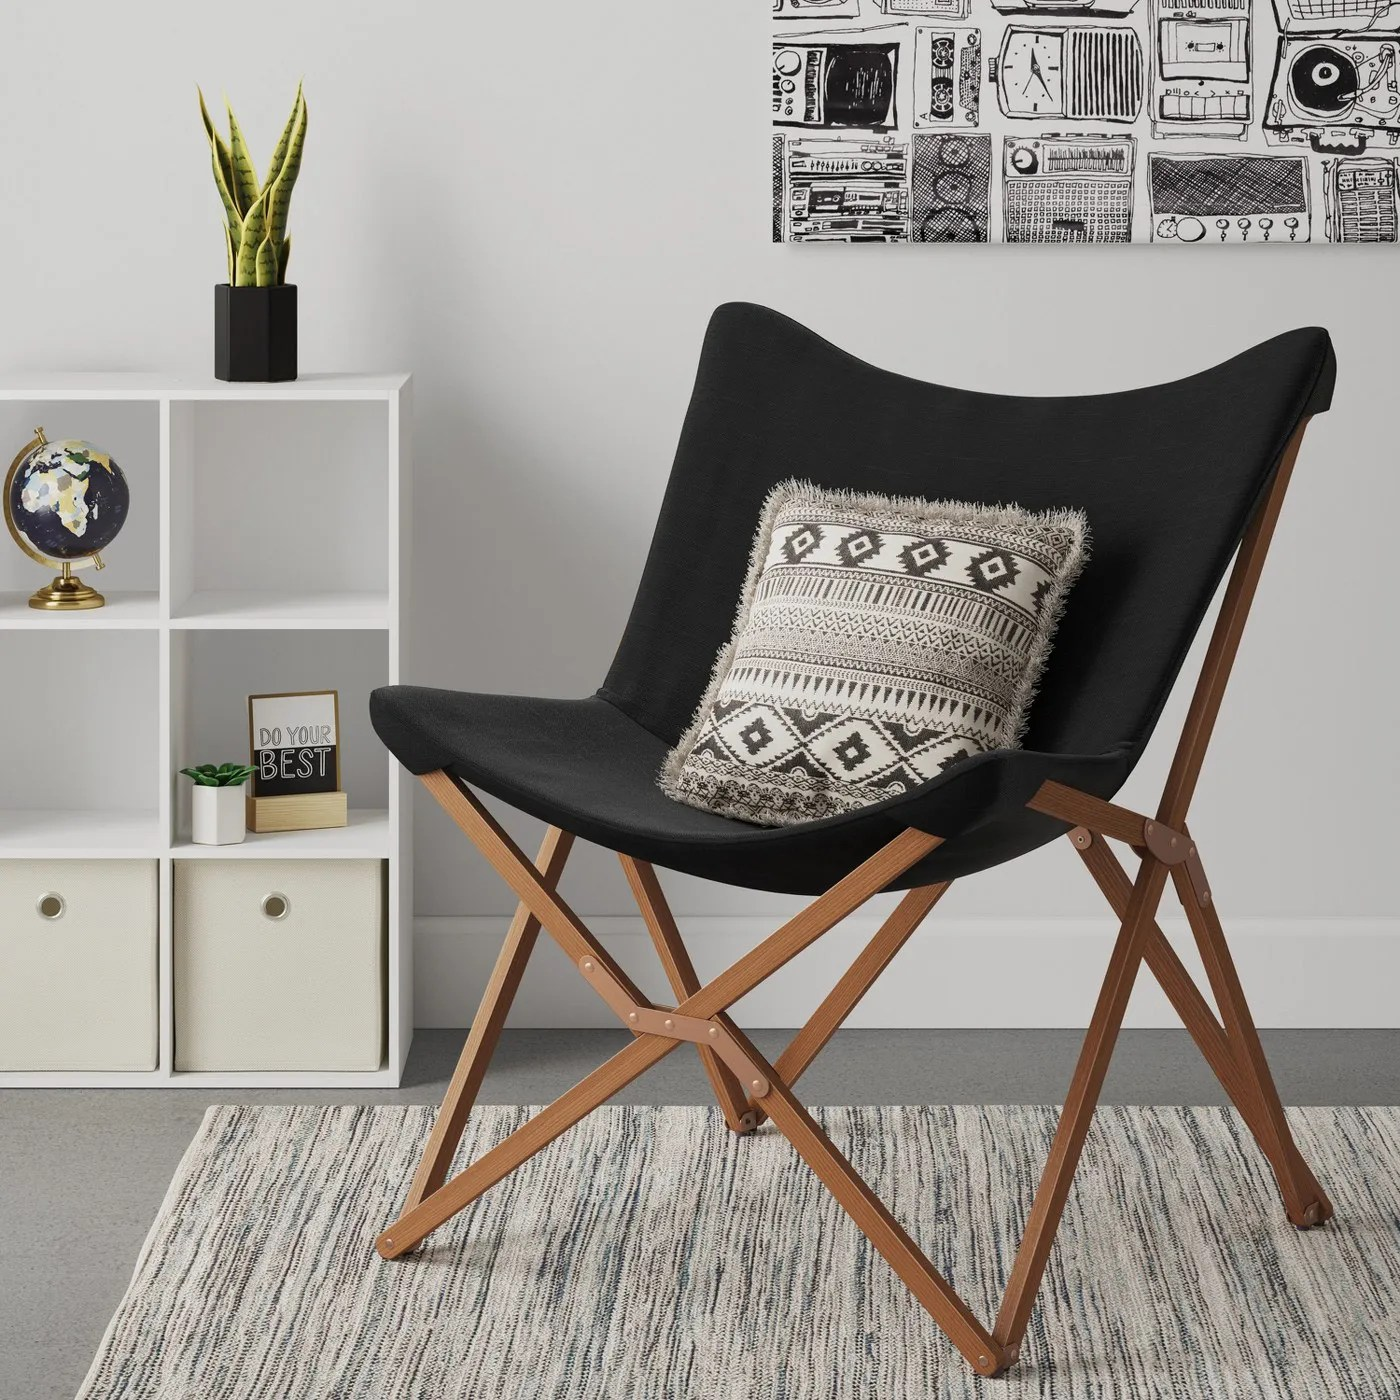 Dorm Room Chairs 12 Best Dorm Room Chairs